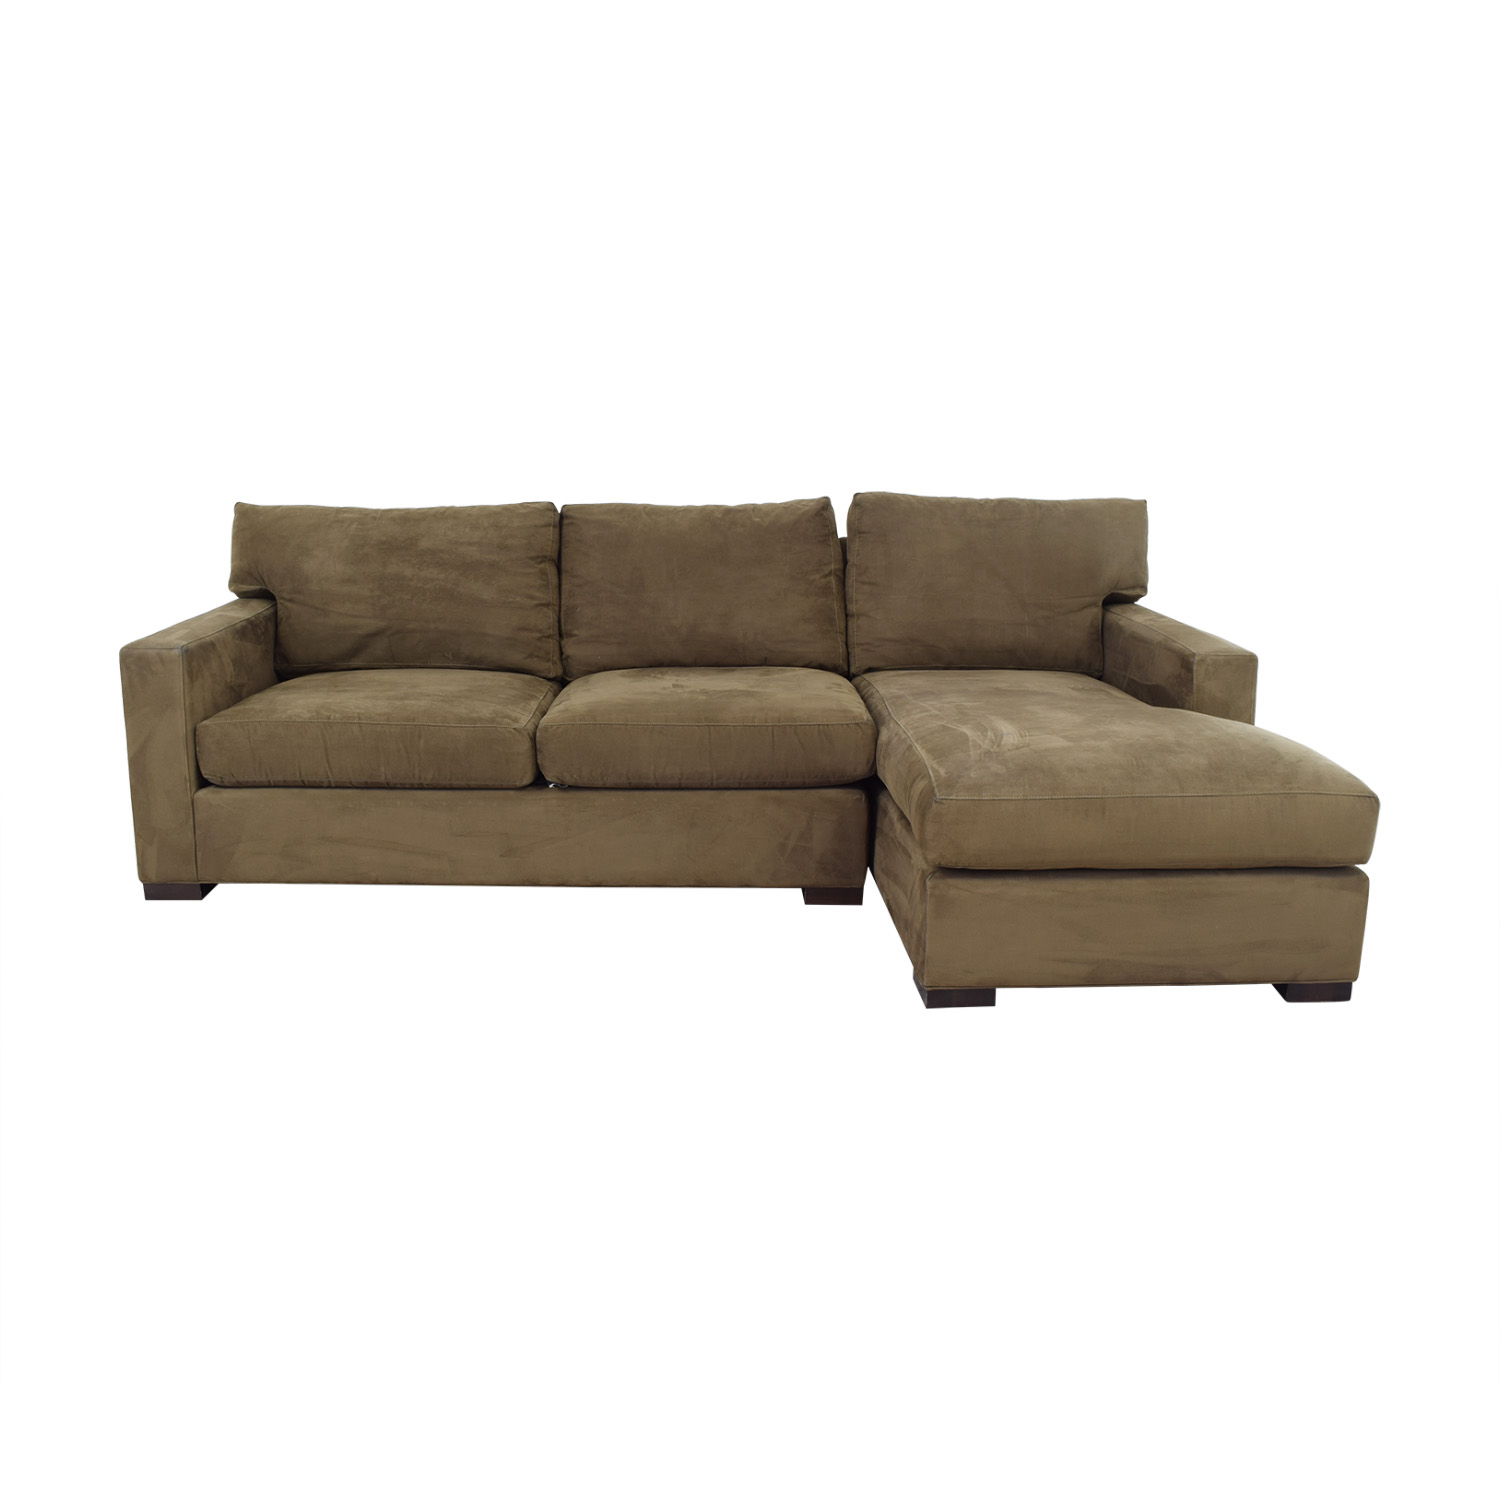 shop Crate & Barrel Sectional Sofa with Chaise Crate & Barrel Sofas